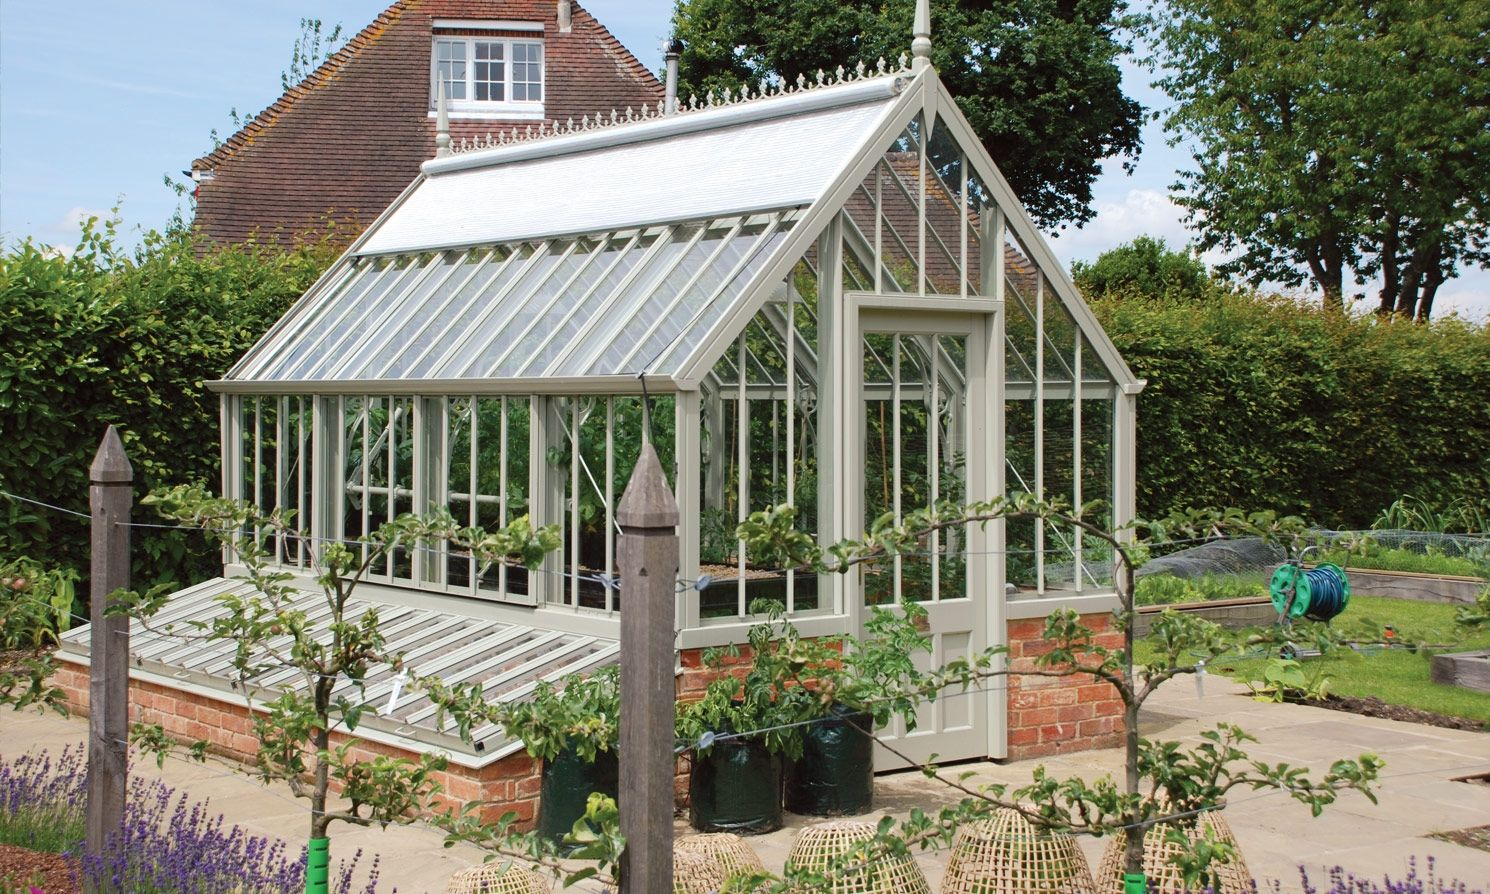 Alitex national trust victorian dwarf wall greenhouse for Victorian conservatory plans